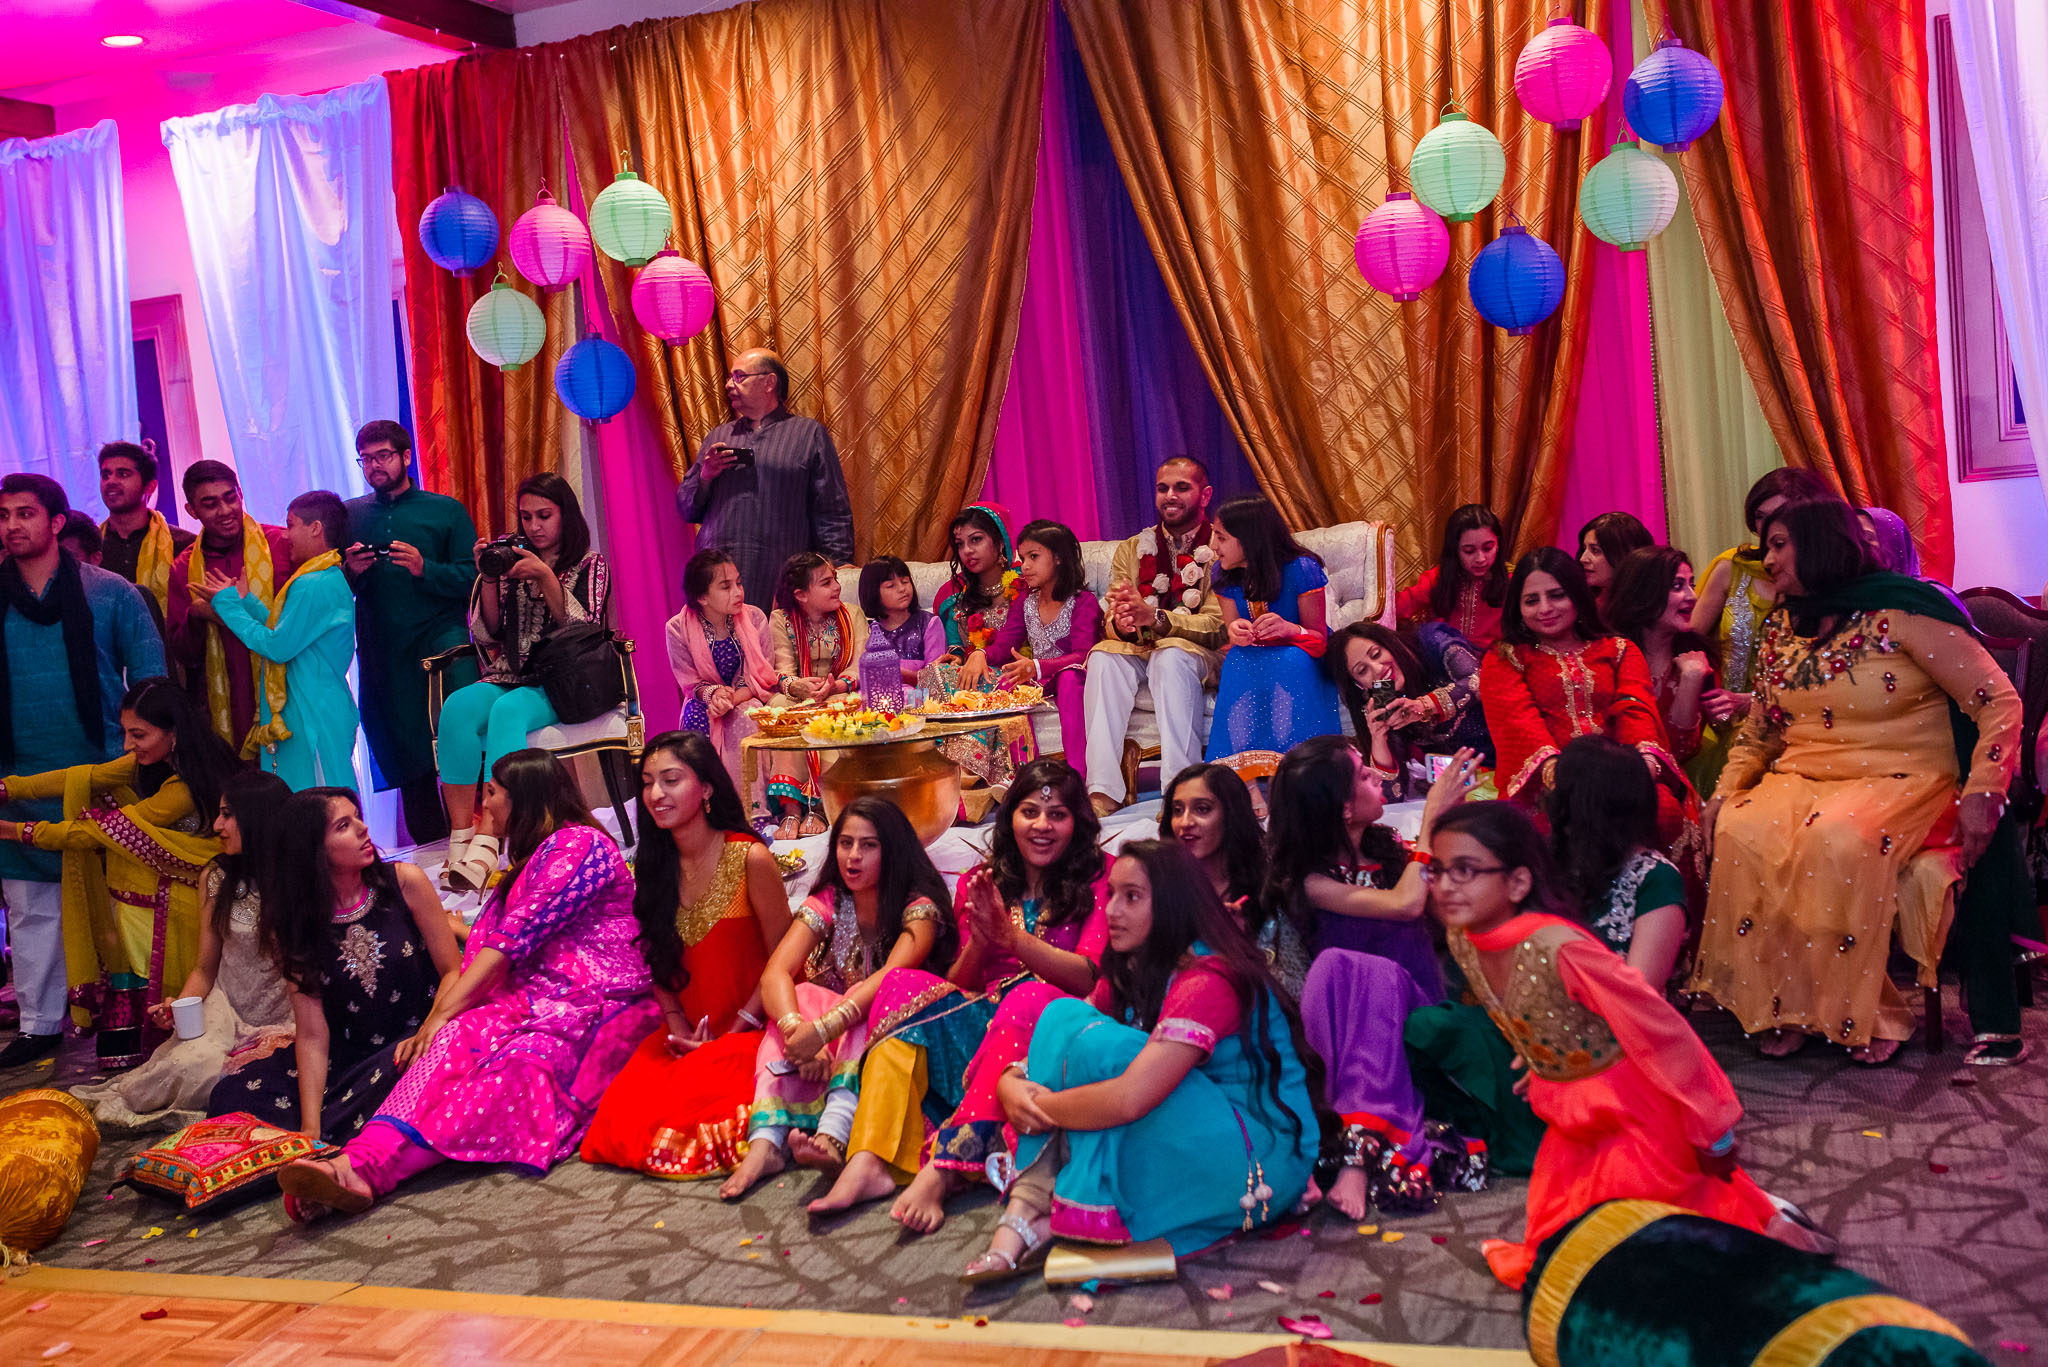 Mehndi Party guests watching dances at Wildwood country club Wedding